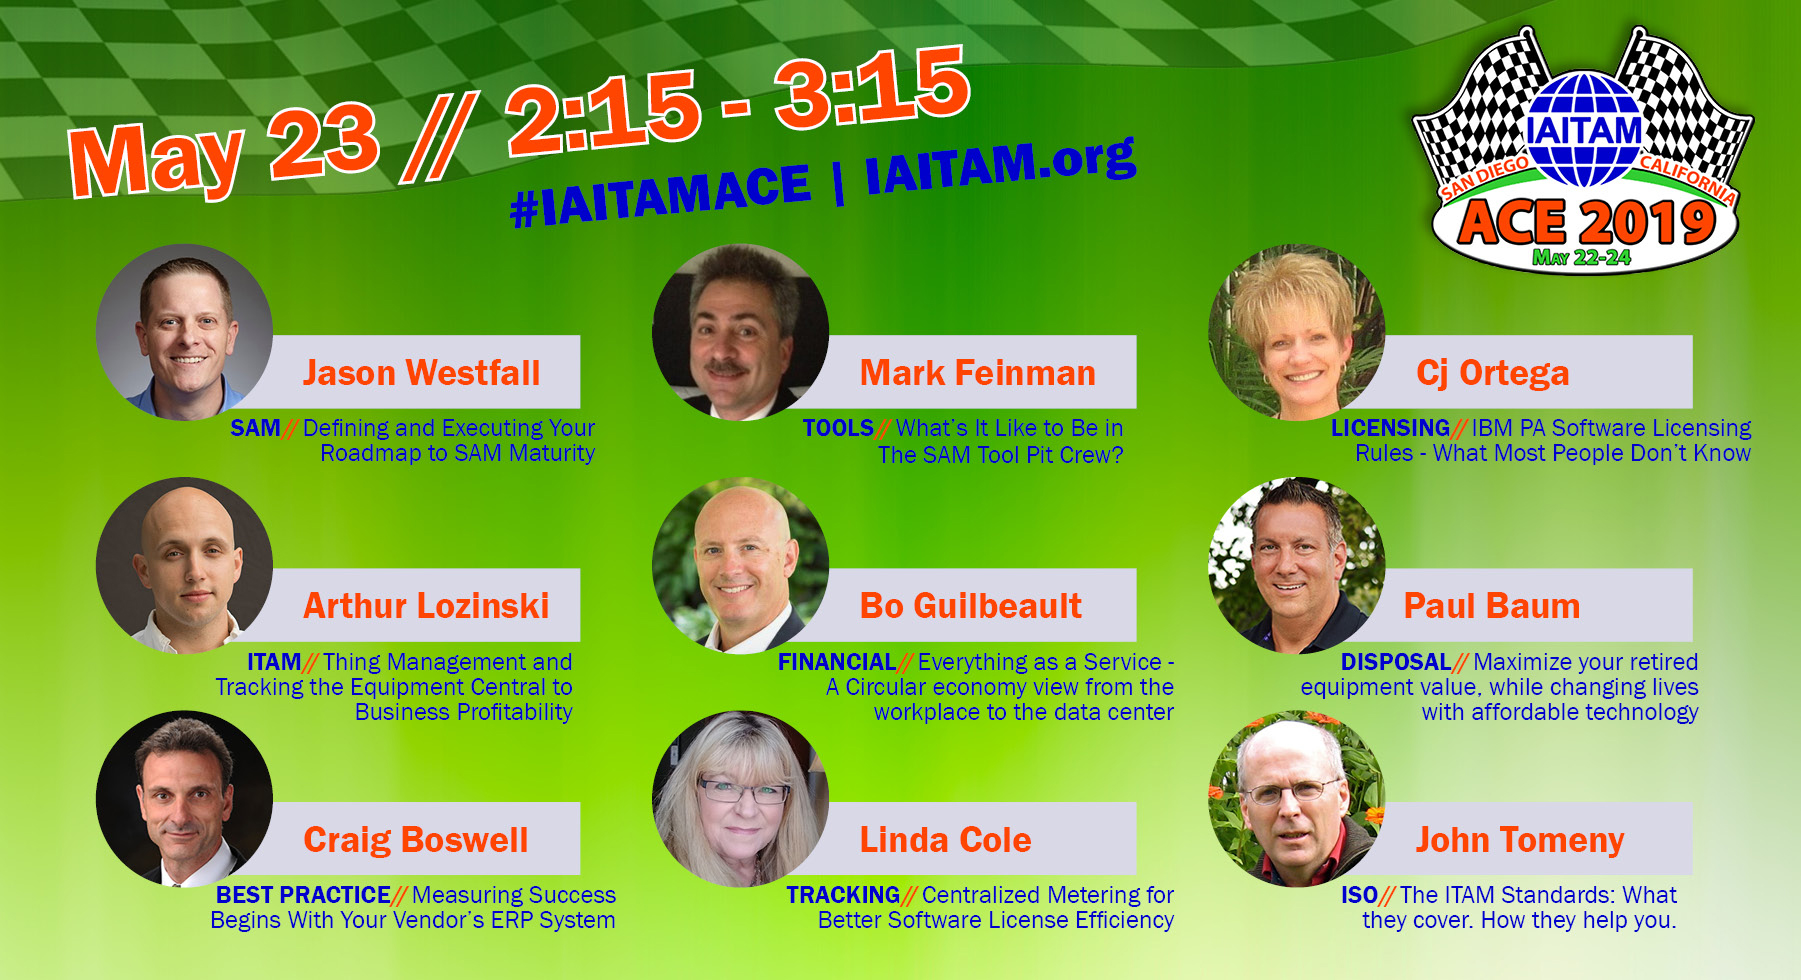 Thank you to our #IAITAMACE Speakers!